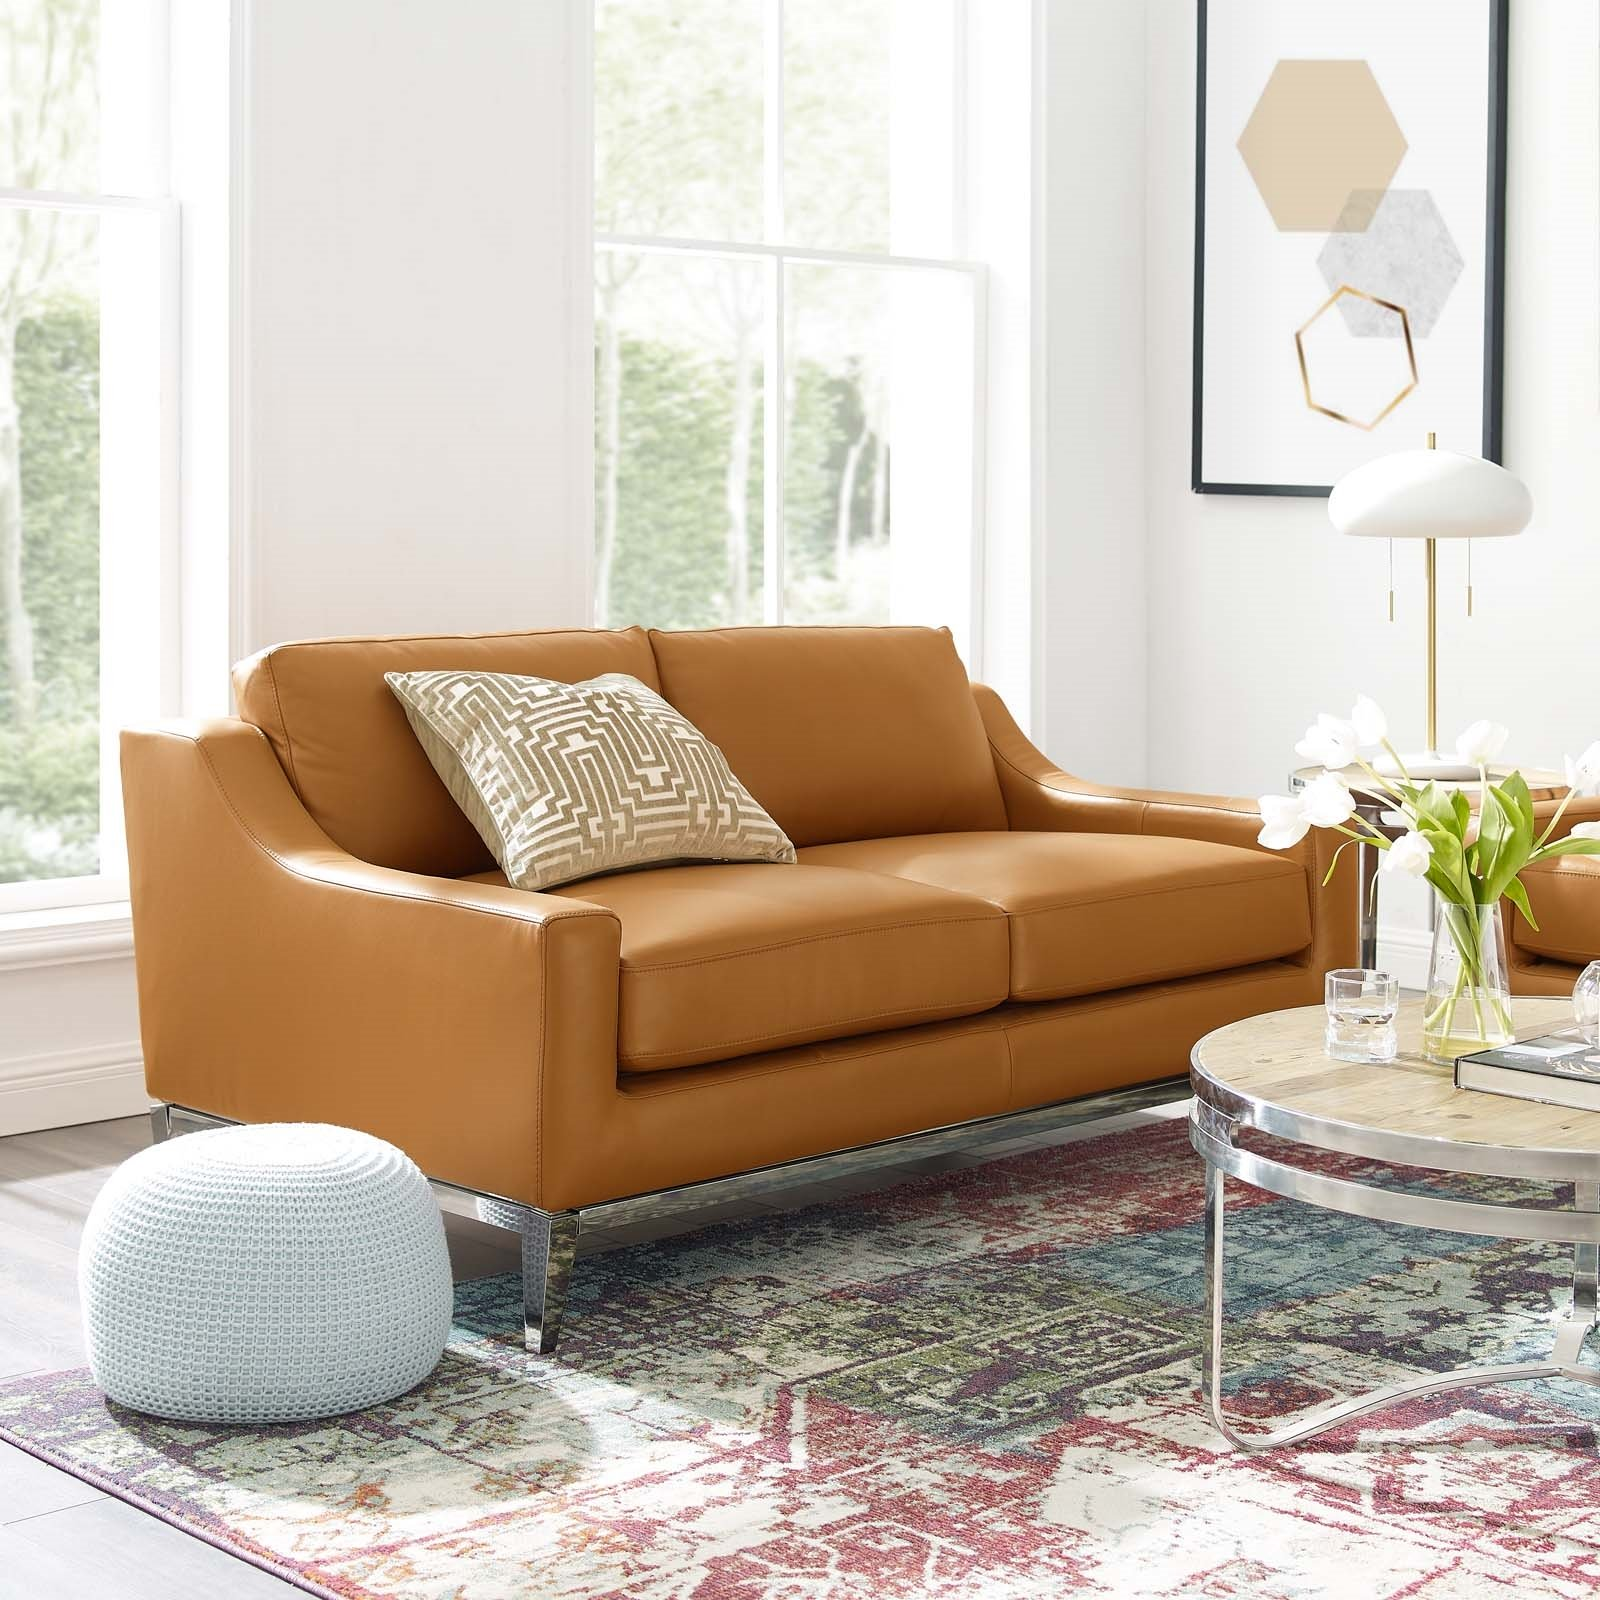 Harness 64 Stainless Steel Base Leather Loveseat in Tan